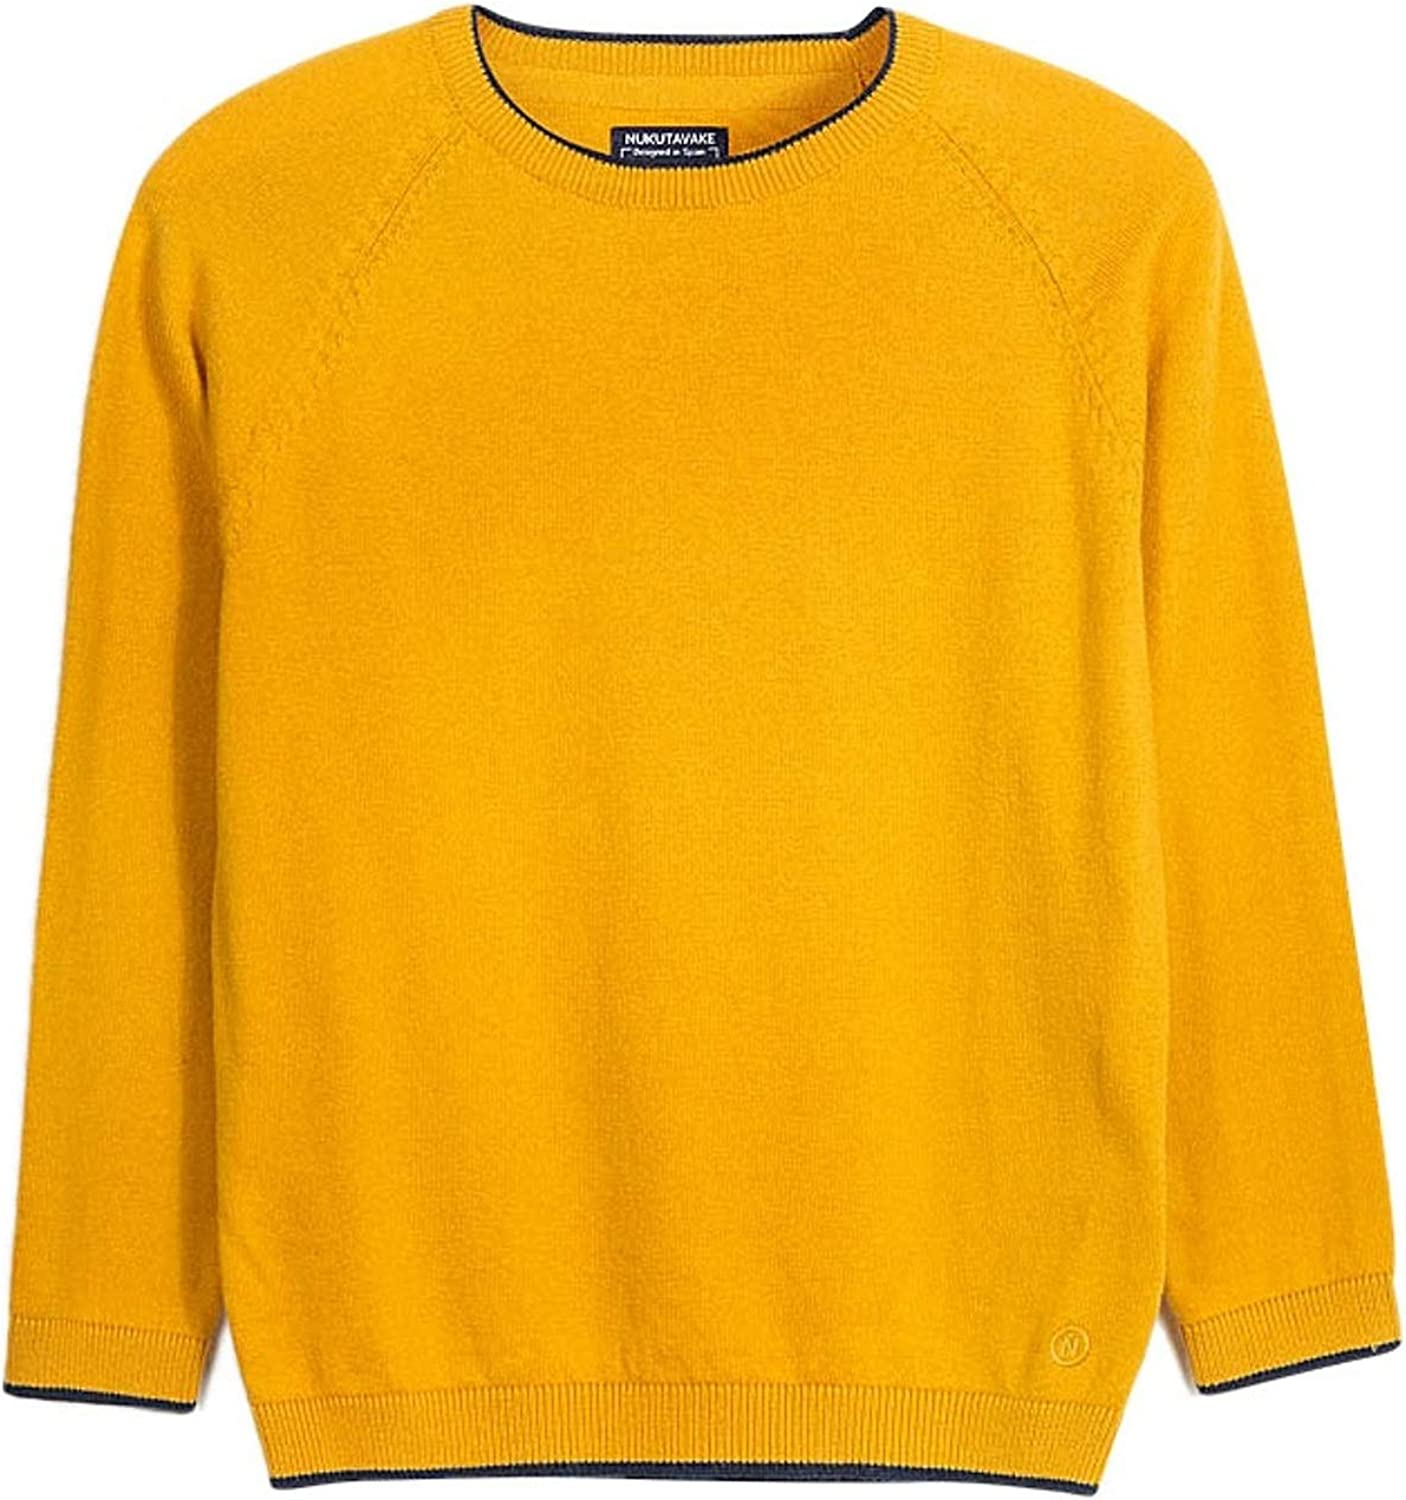 Mayoral - Basic Crew Max 61% OFF Neck 0350 for Boys Sweater Be super welcome Wheat